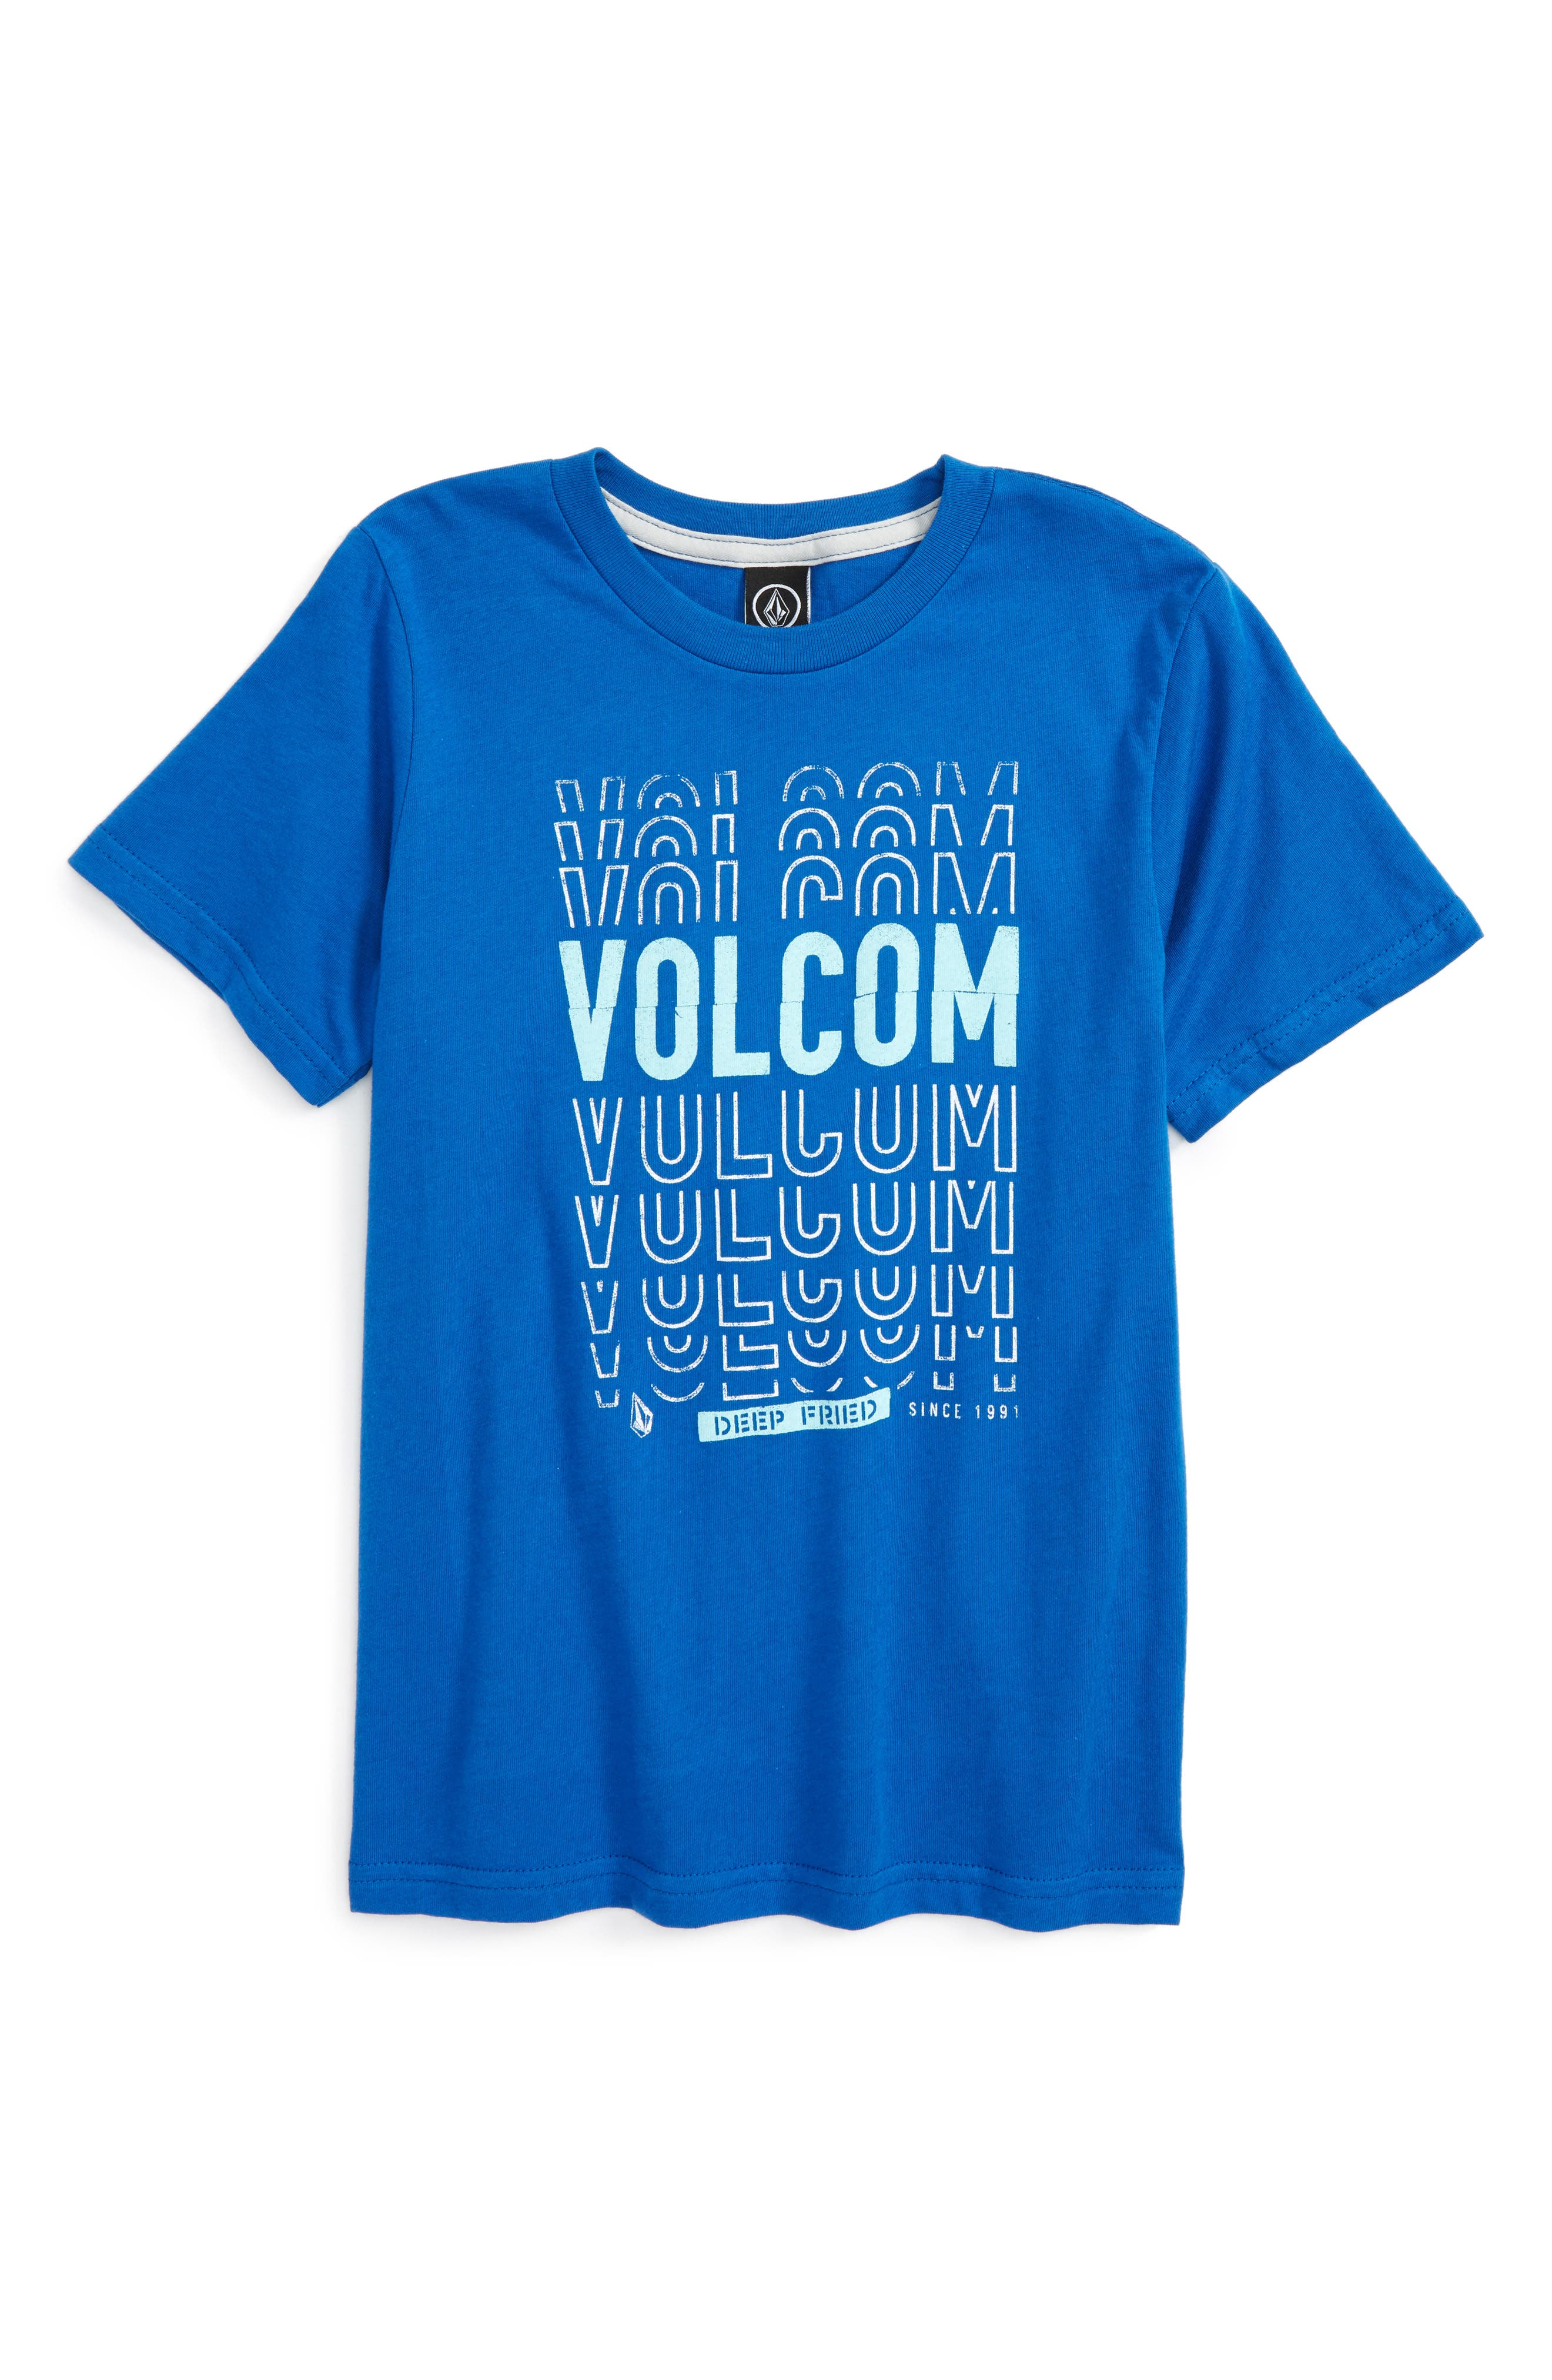 Volcom Copy Cut Graphic T-Shirt (Toddler Boys & Little Boys)